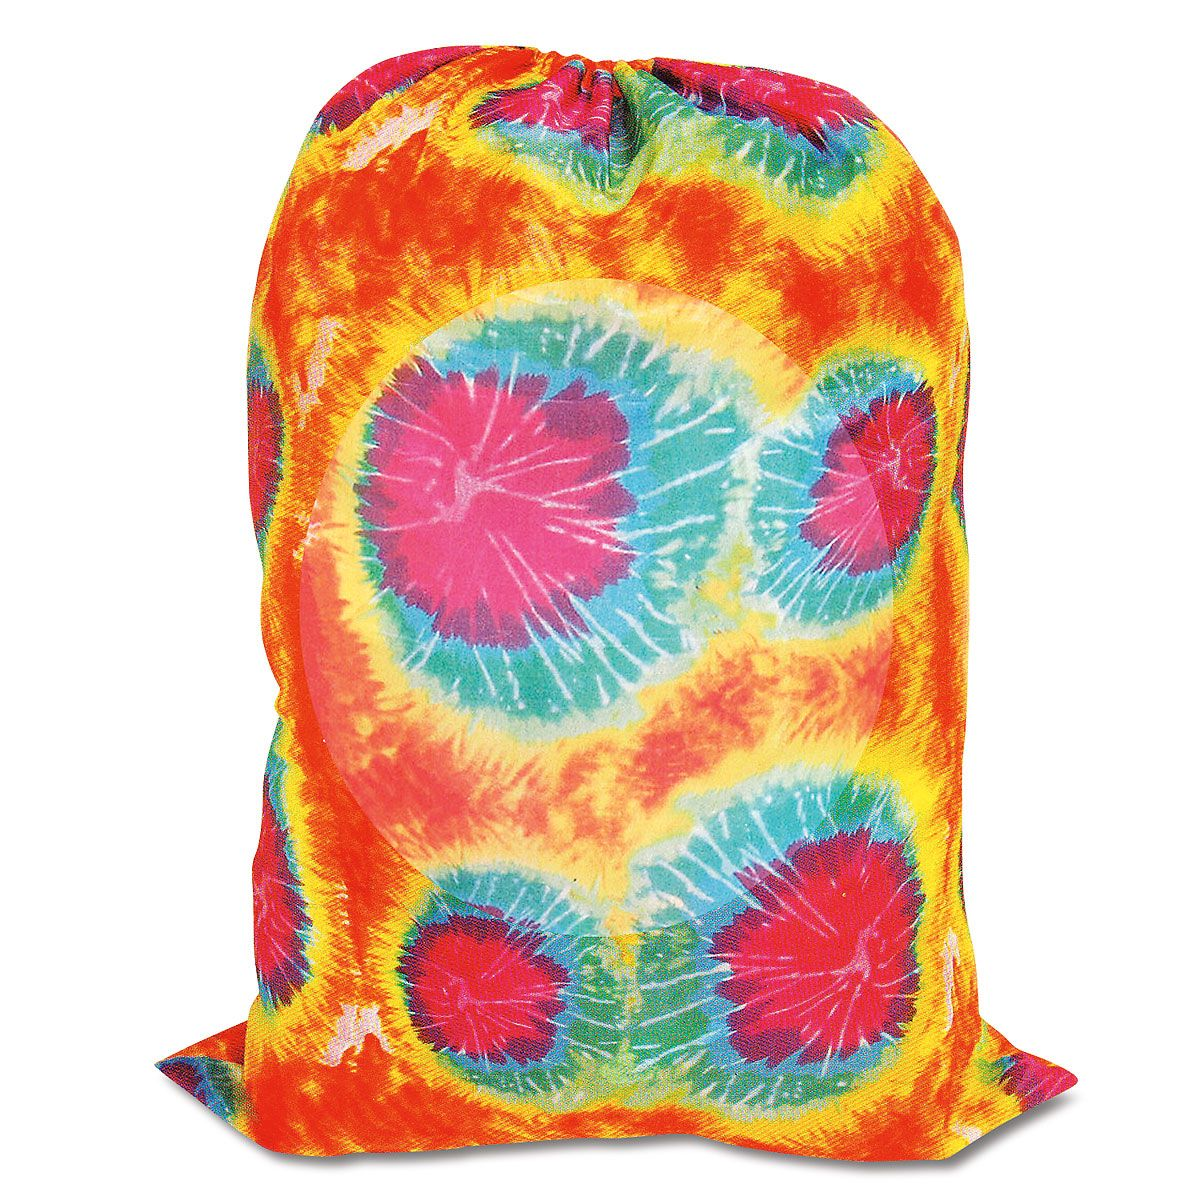 Tie-Dyed Orange Laundry Bag